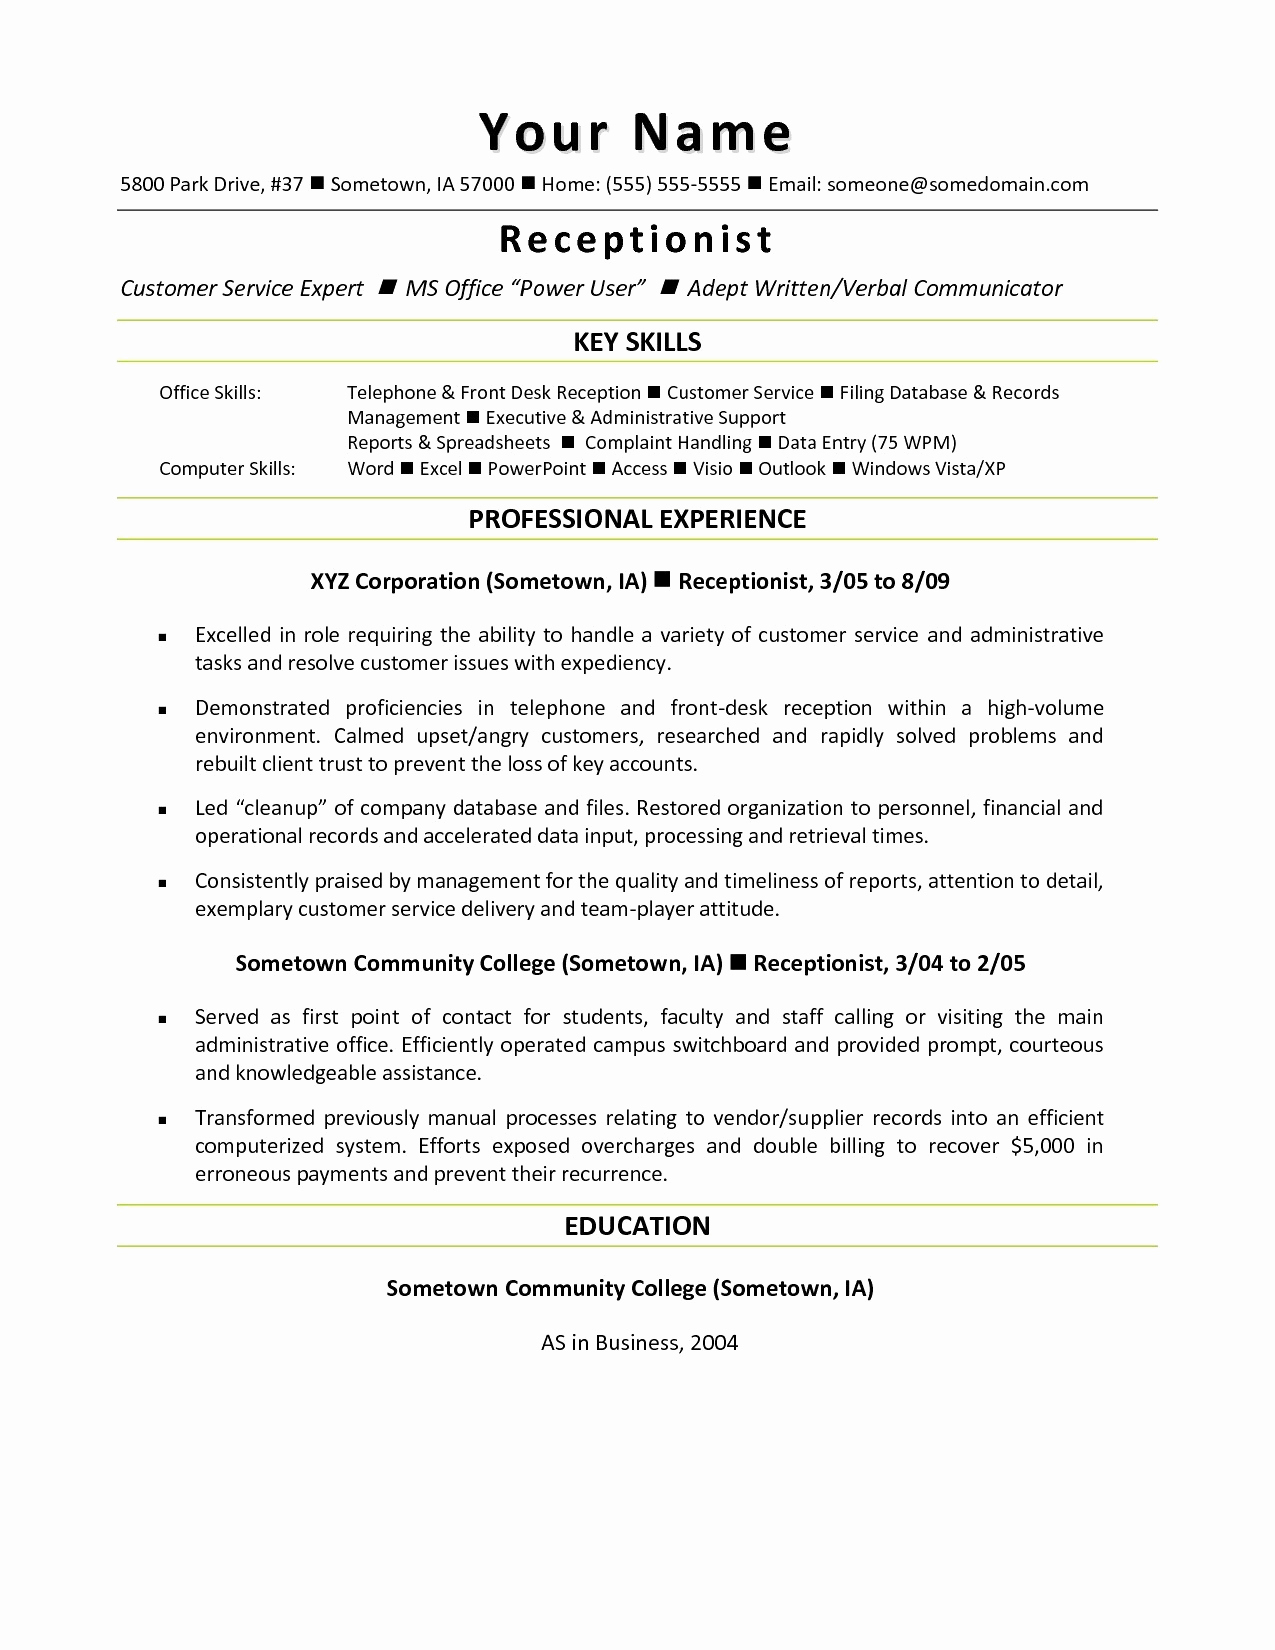 Nursing School Resume - 30 Resumes for Nursing School